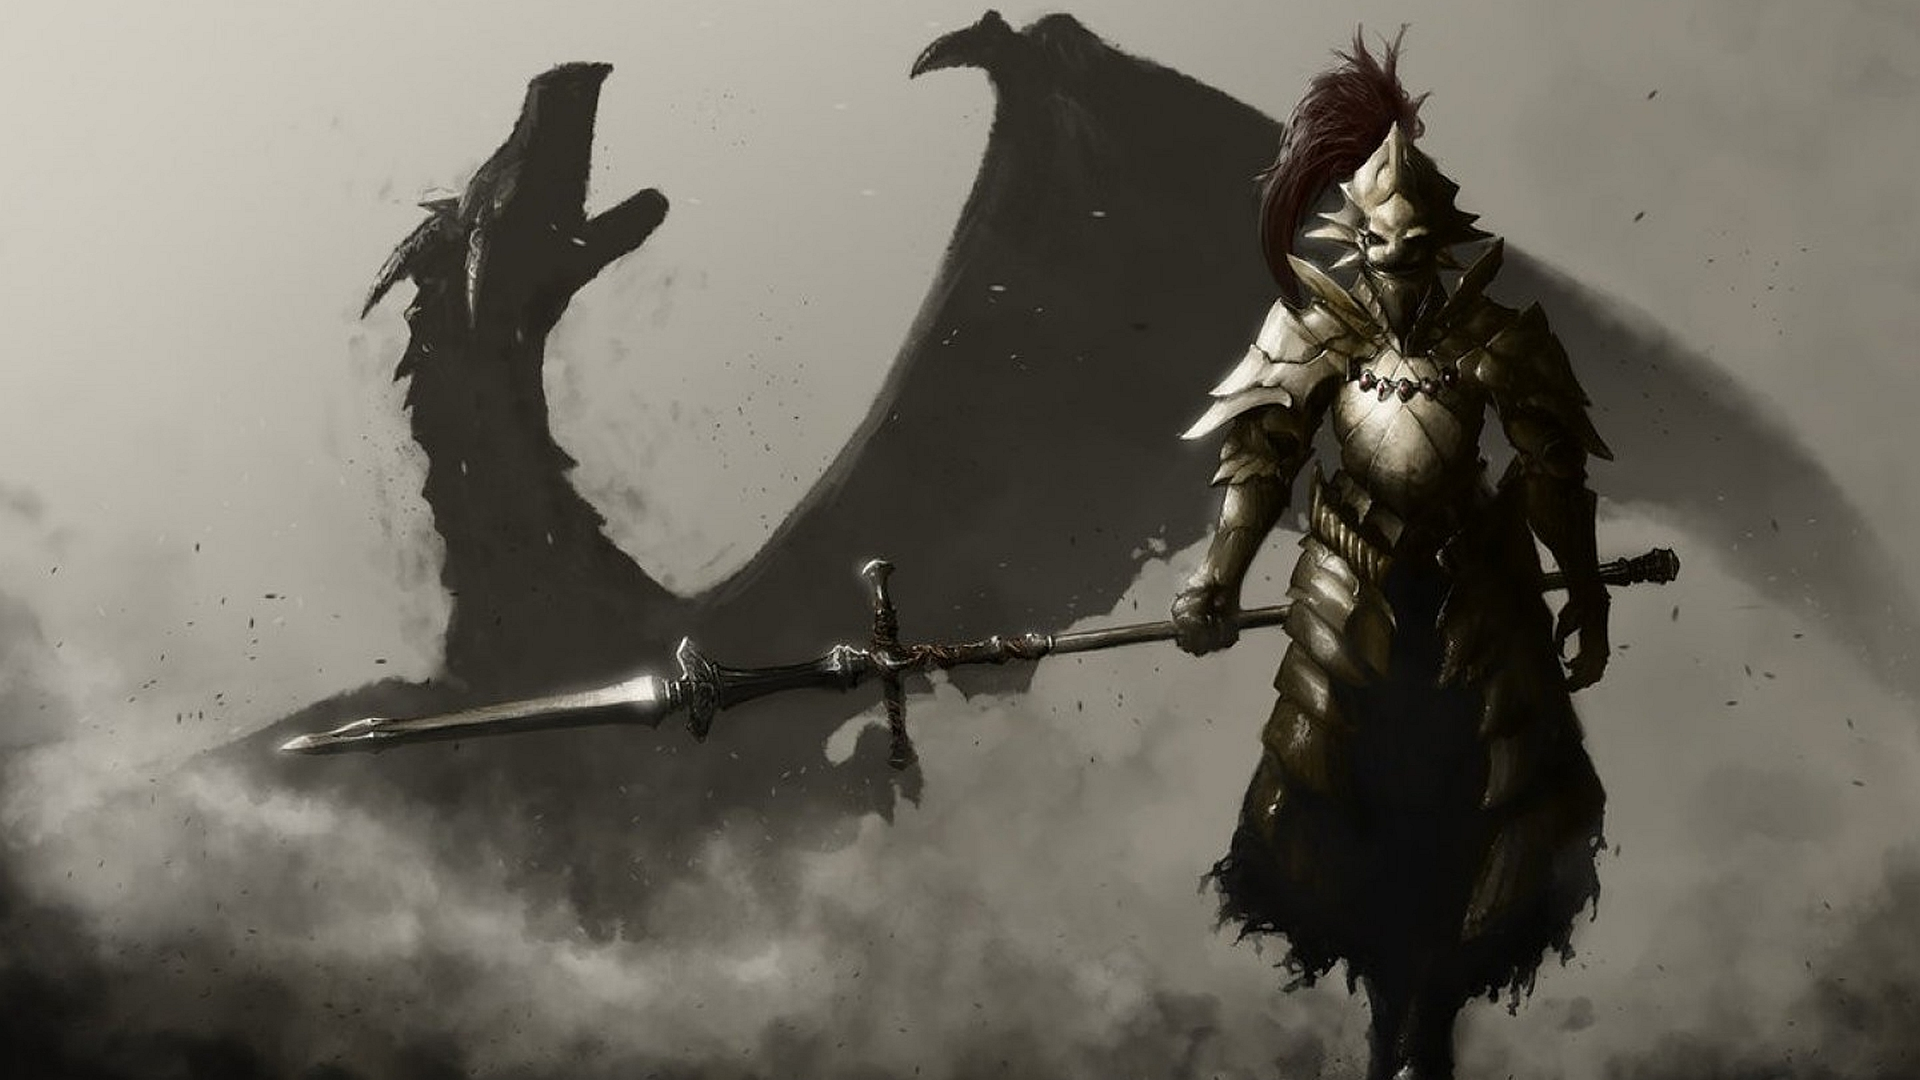 Dark Souls 2 Wallpaper 1920x1080 52274